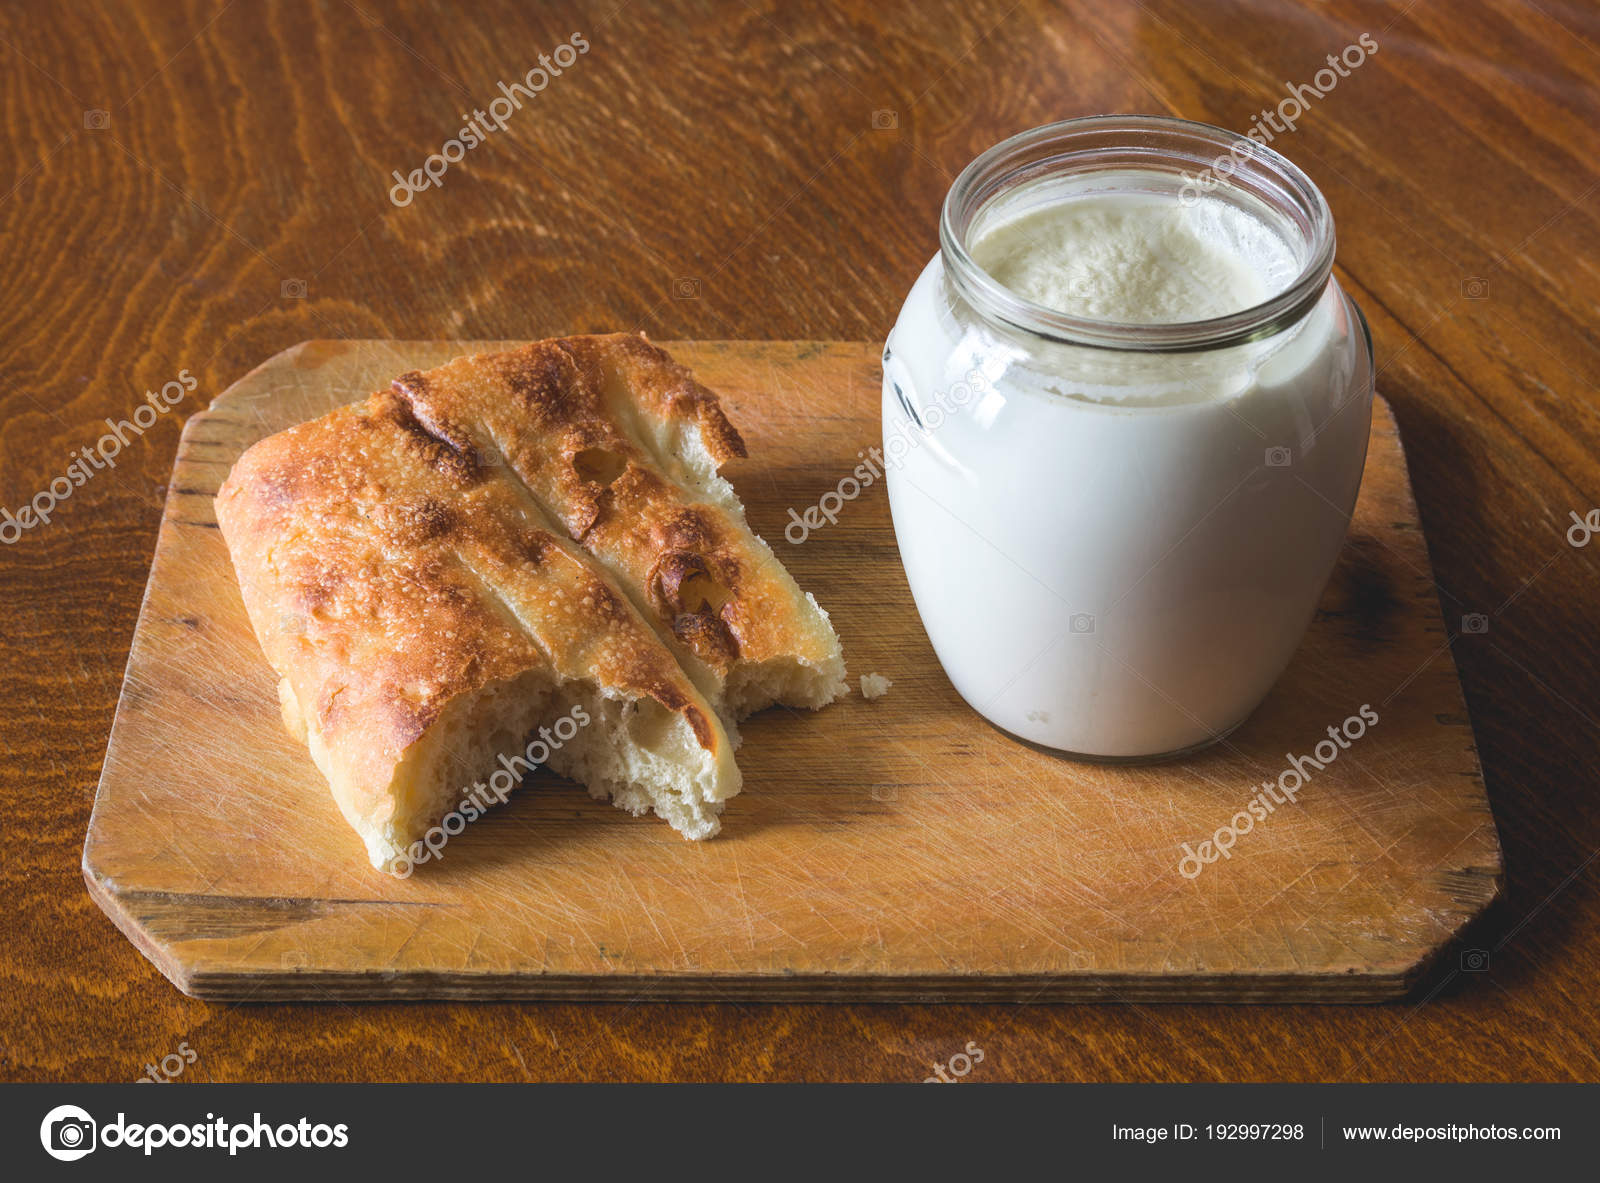 Sour milk in a glass jar with a piece of asian pita bread on